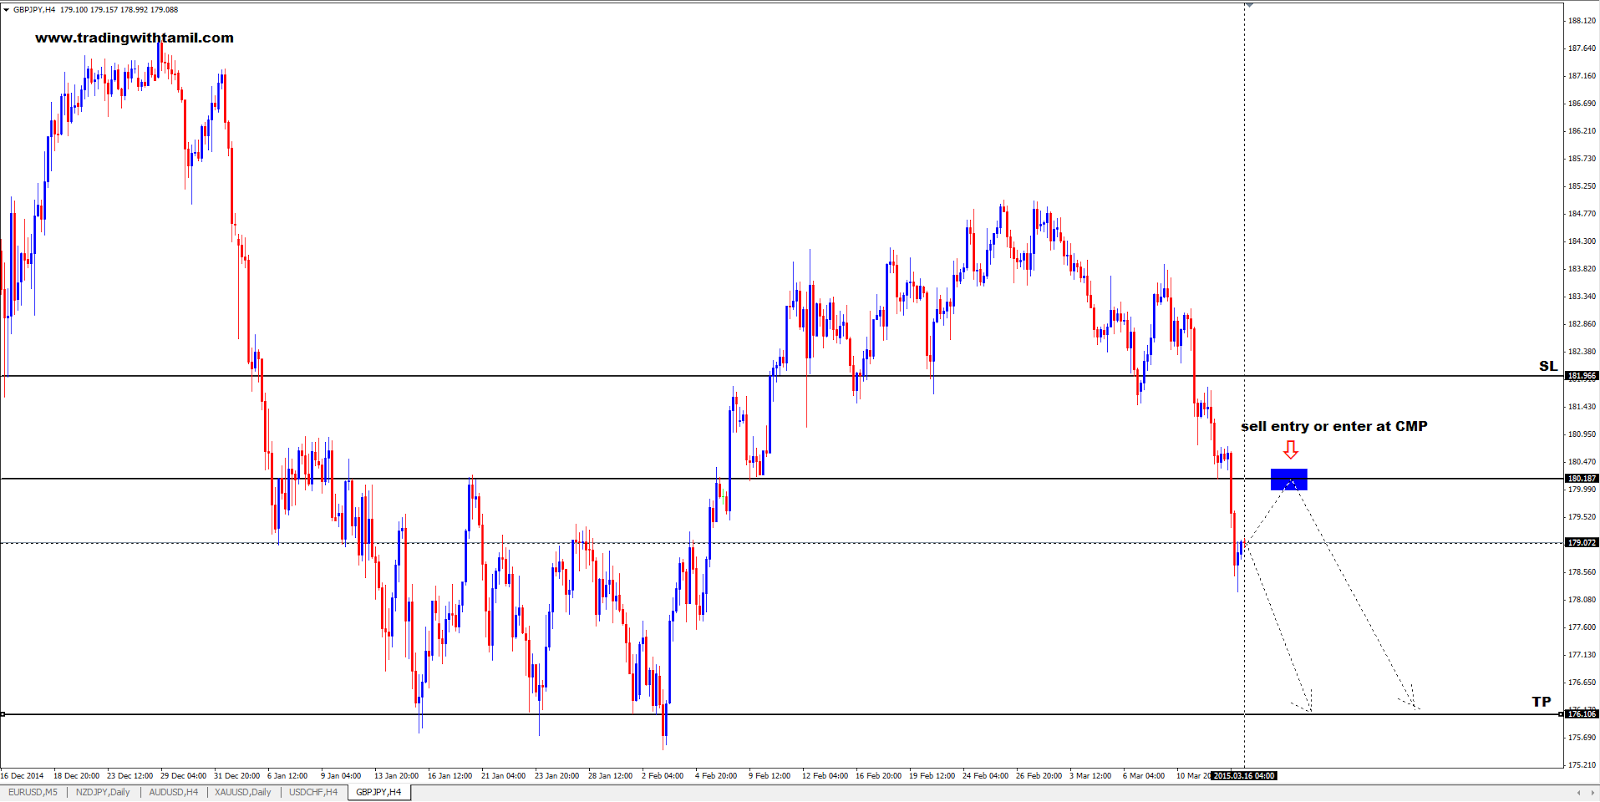 Q-FOREX LIVE CHALLENGING SIGNAL 16 Mar 2015 – SELL GBP/JPY